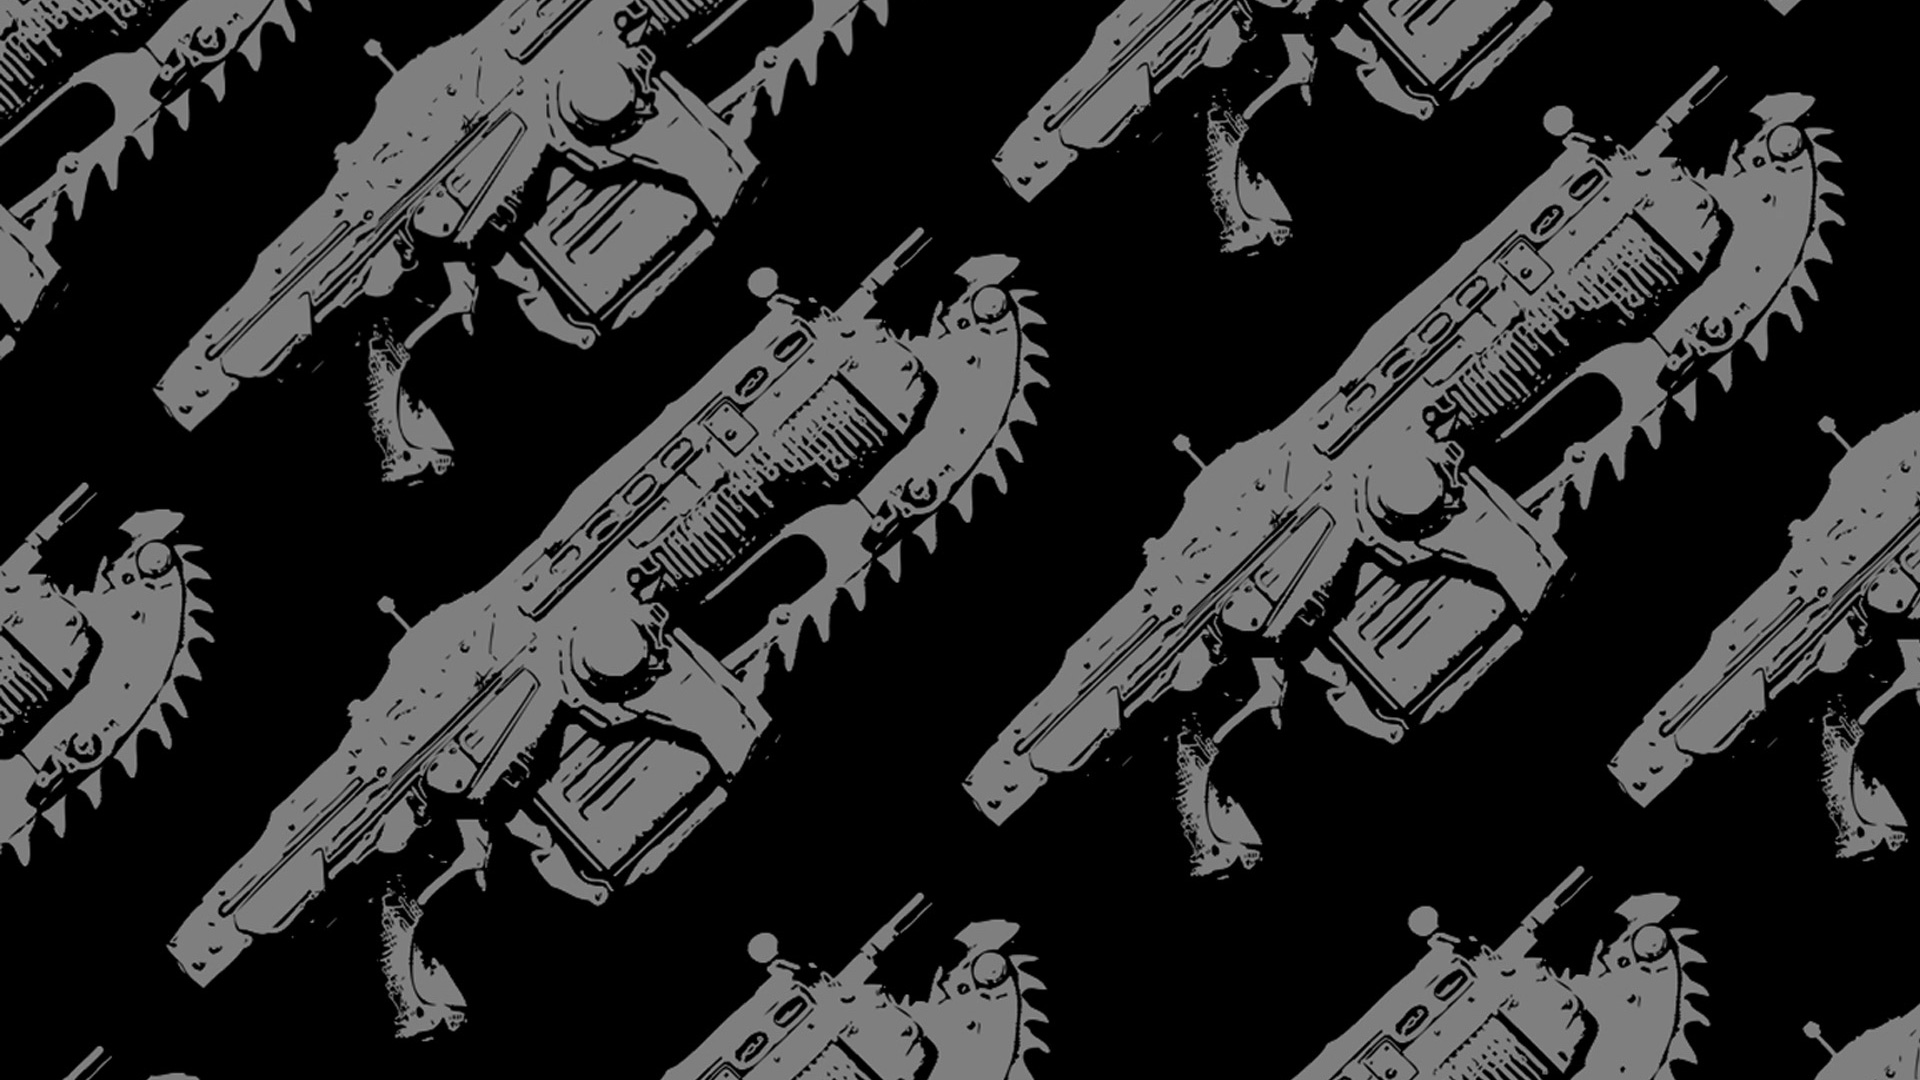 Gears of War Wallpaper in 1920x1080